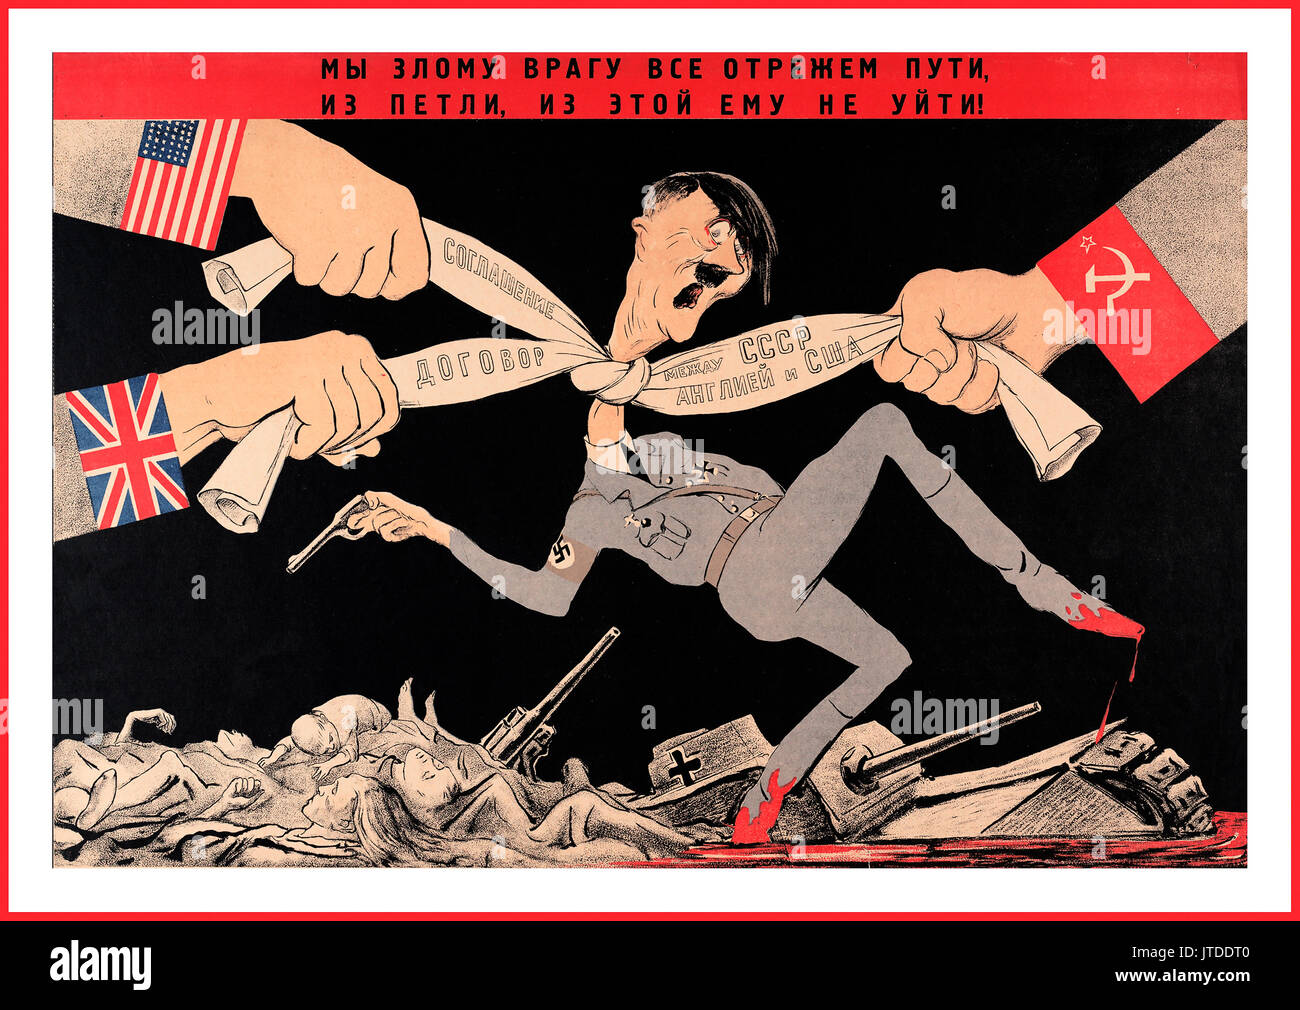 Vintage Russian Soviet World War Two Propaganda Poster Hitler being strangled by military propaganda pressure AXIS countries-USA RUSSIA and UK 1940's Treaty of solidarity between the Soviet Union, England, and the United States, 1942. Found in the collection of the Russian State Library, Moscow . - Stock Image